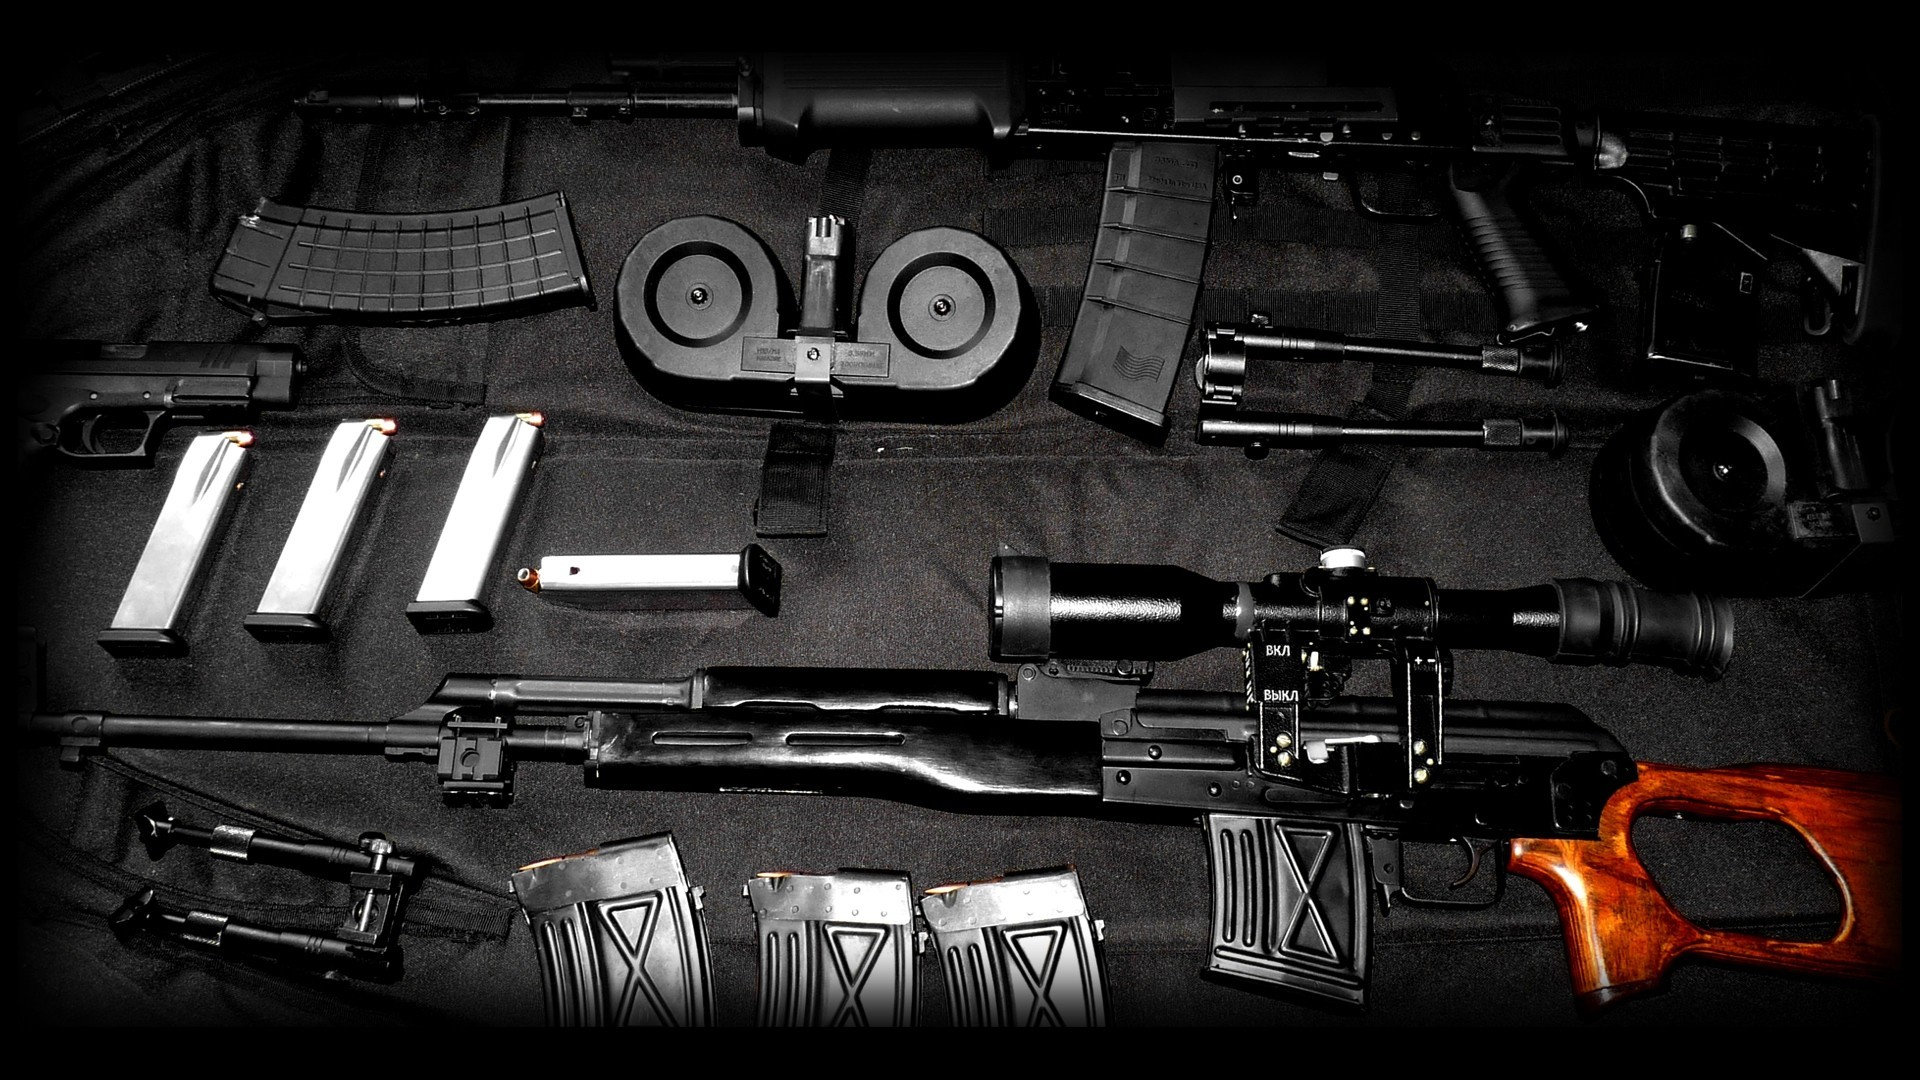 1920x1200 Upgrade Of AK47 HD Wallpaper